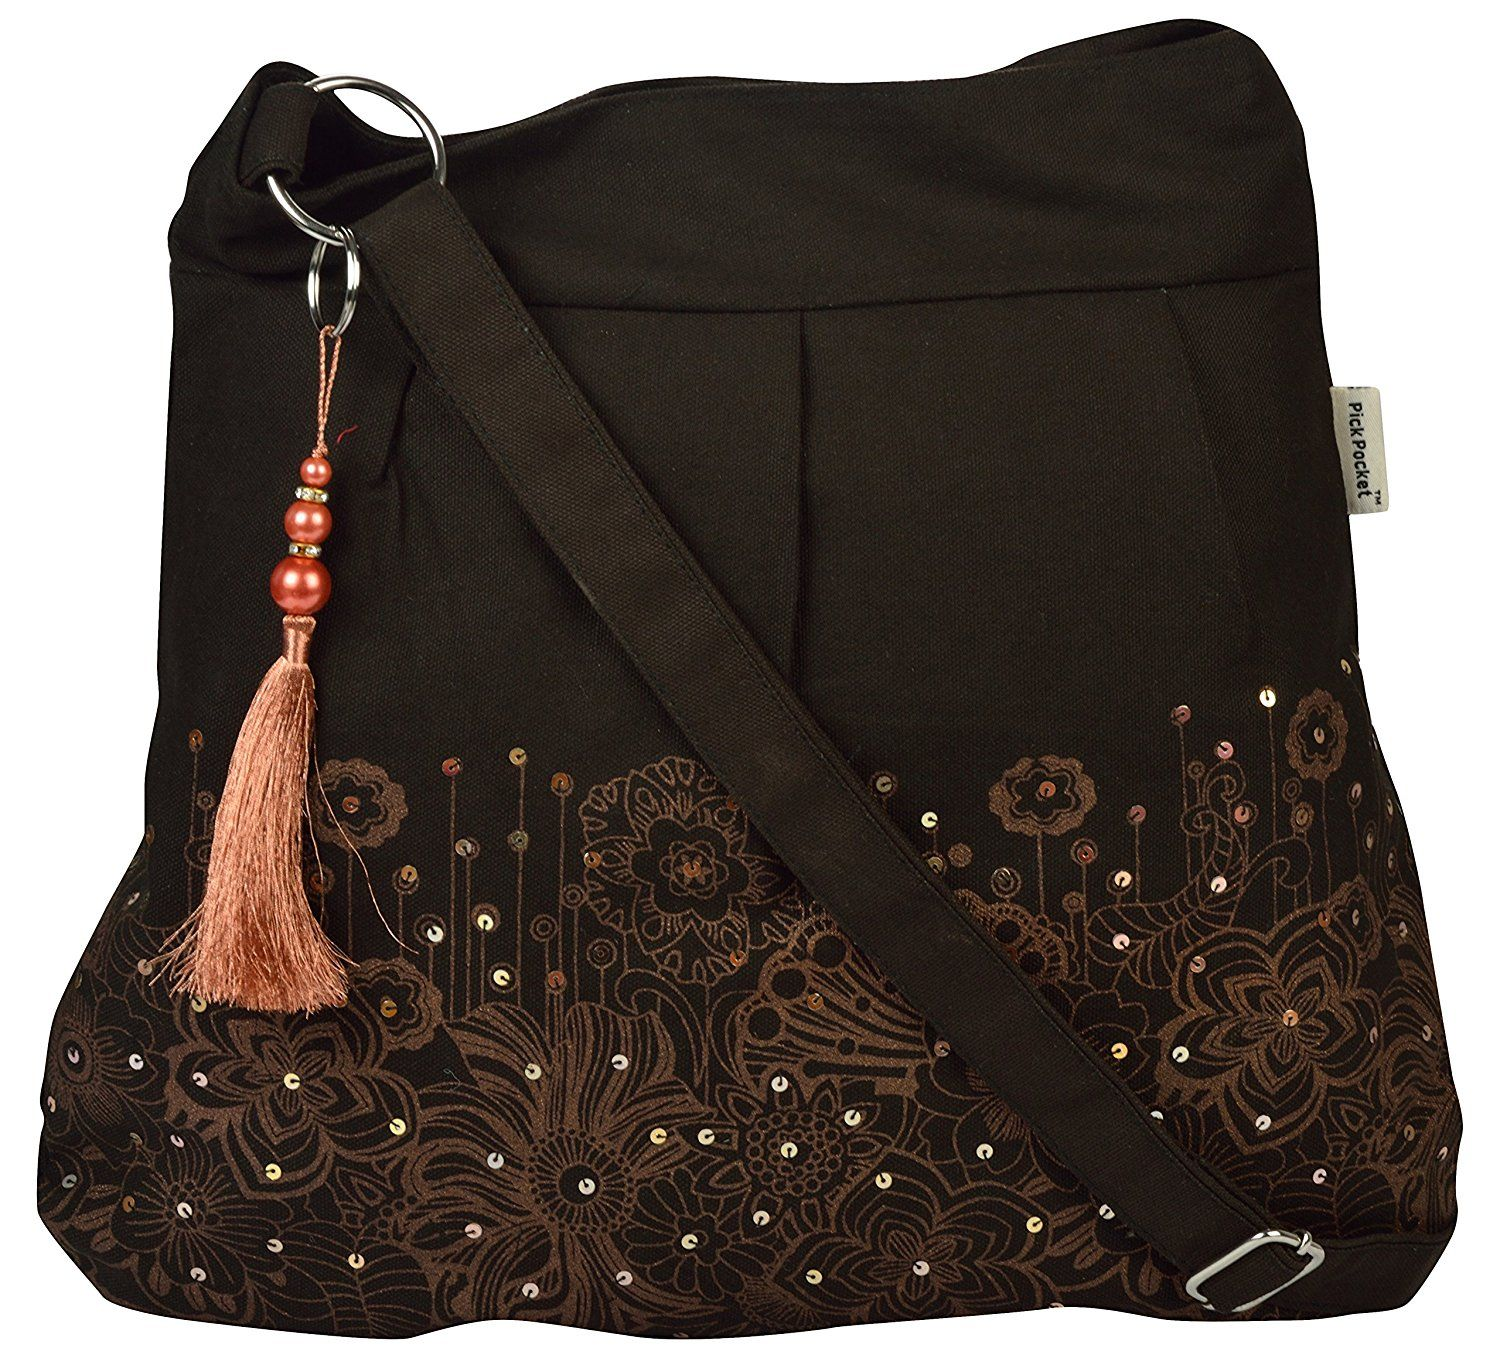 1a03a3e4ece8 Buy Pick Pocket black copper and golden printed canvas Sling bag Online at  Low prices in